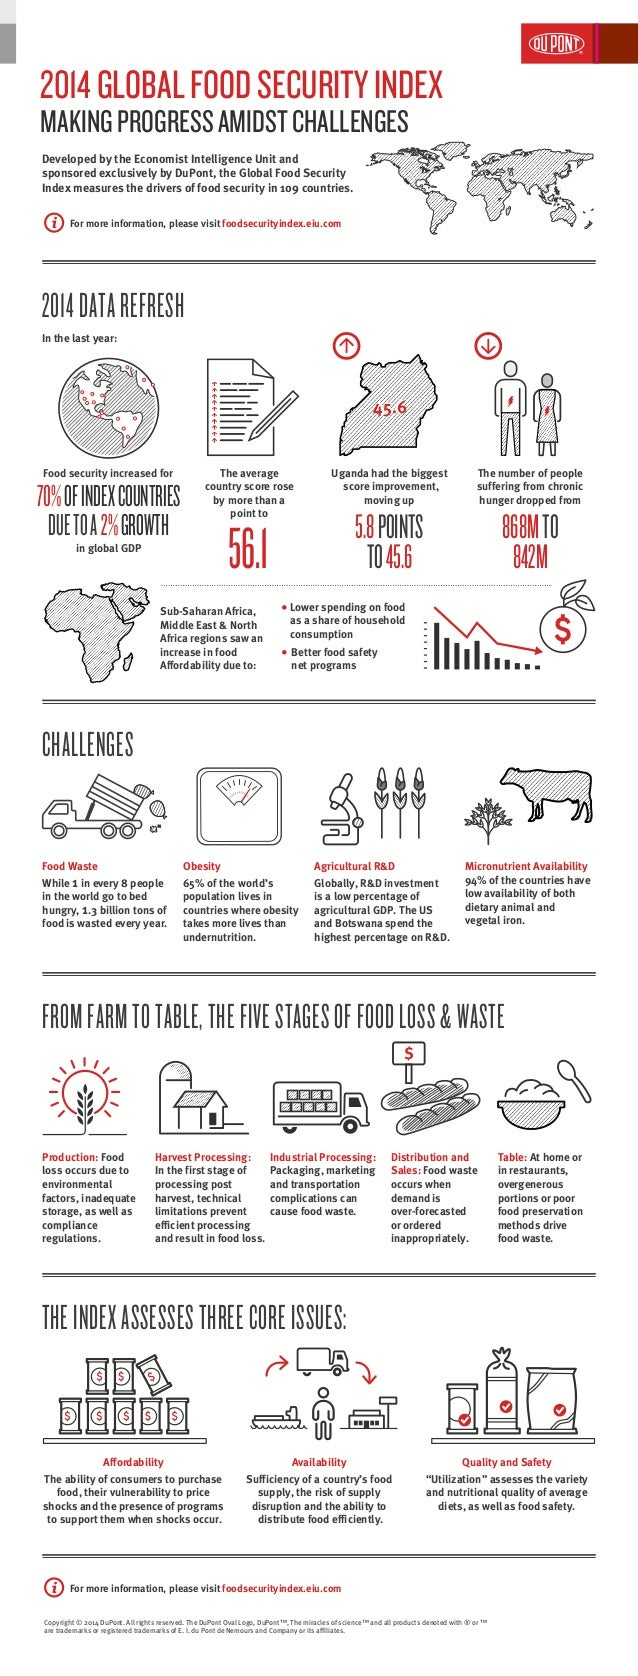 2014GLOBALFOODSECURITYINDEX MAKINGPROGRESSAMIDSTCHALLENGES 2014DATAREFRESH In the last year: Food security increased for D...